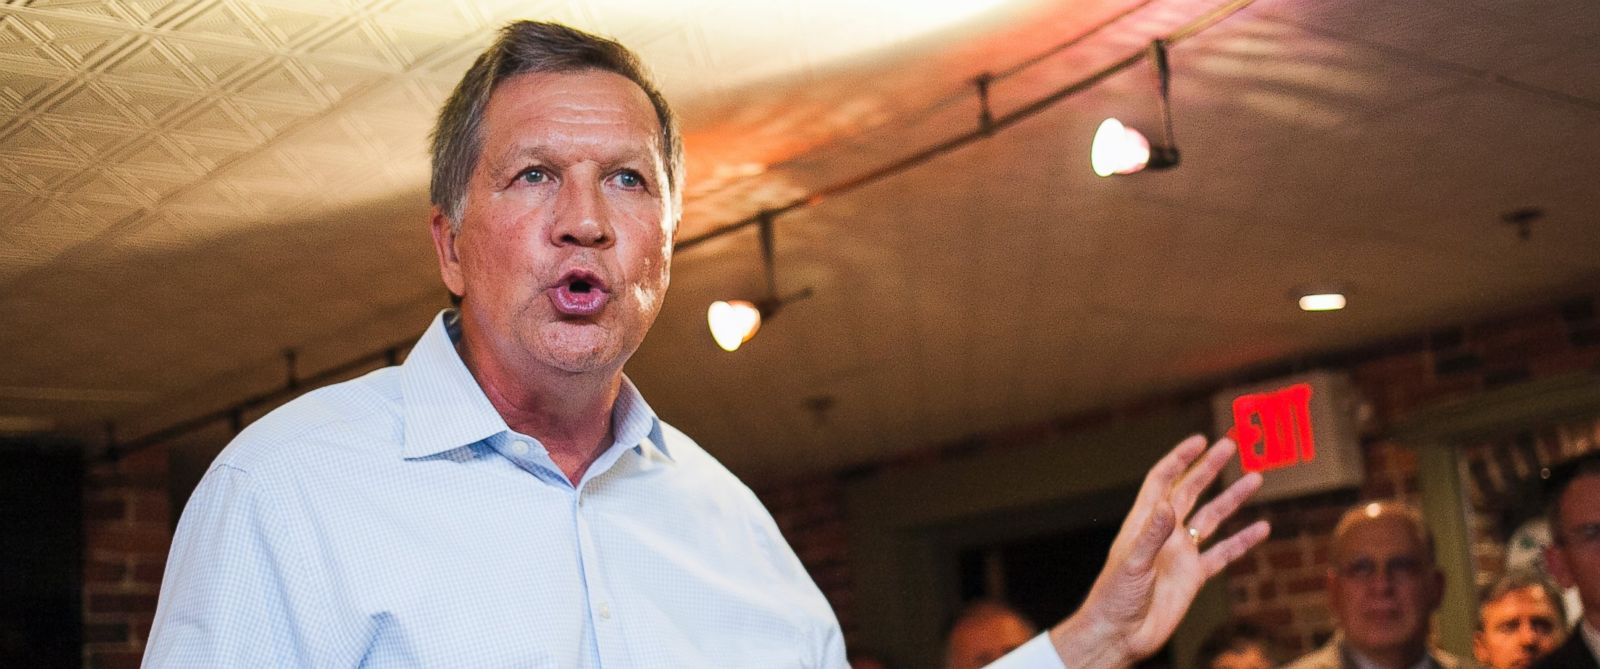 PHOTO: Ohio Gov. John Kasich, R-Ohio, speaks during an event hosted by the New Hampshire Business Caucus and Greater Concord Chamber of Commerce at The Barley House in Concord, N.H., Wednesday, May 6, 2015.